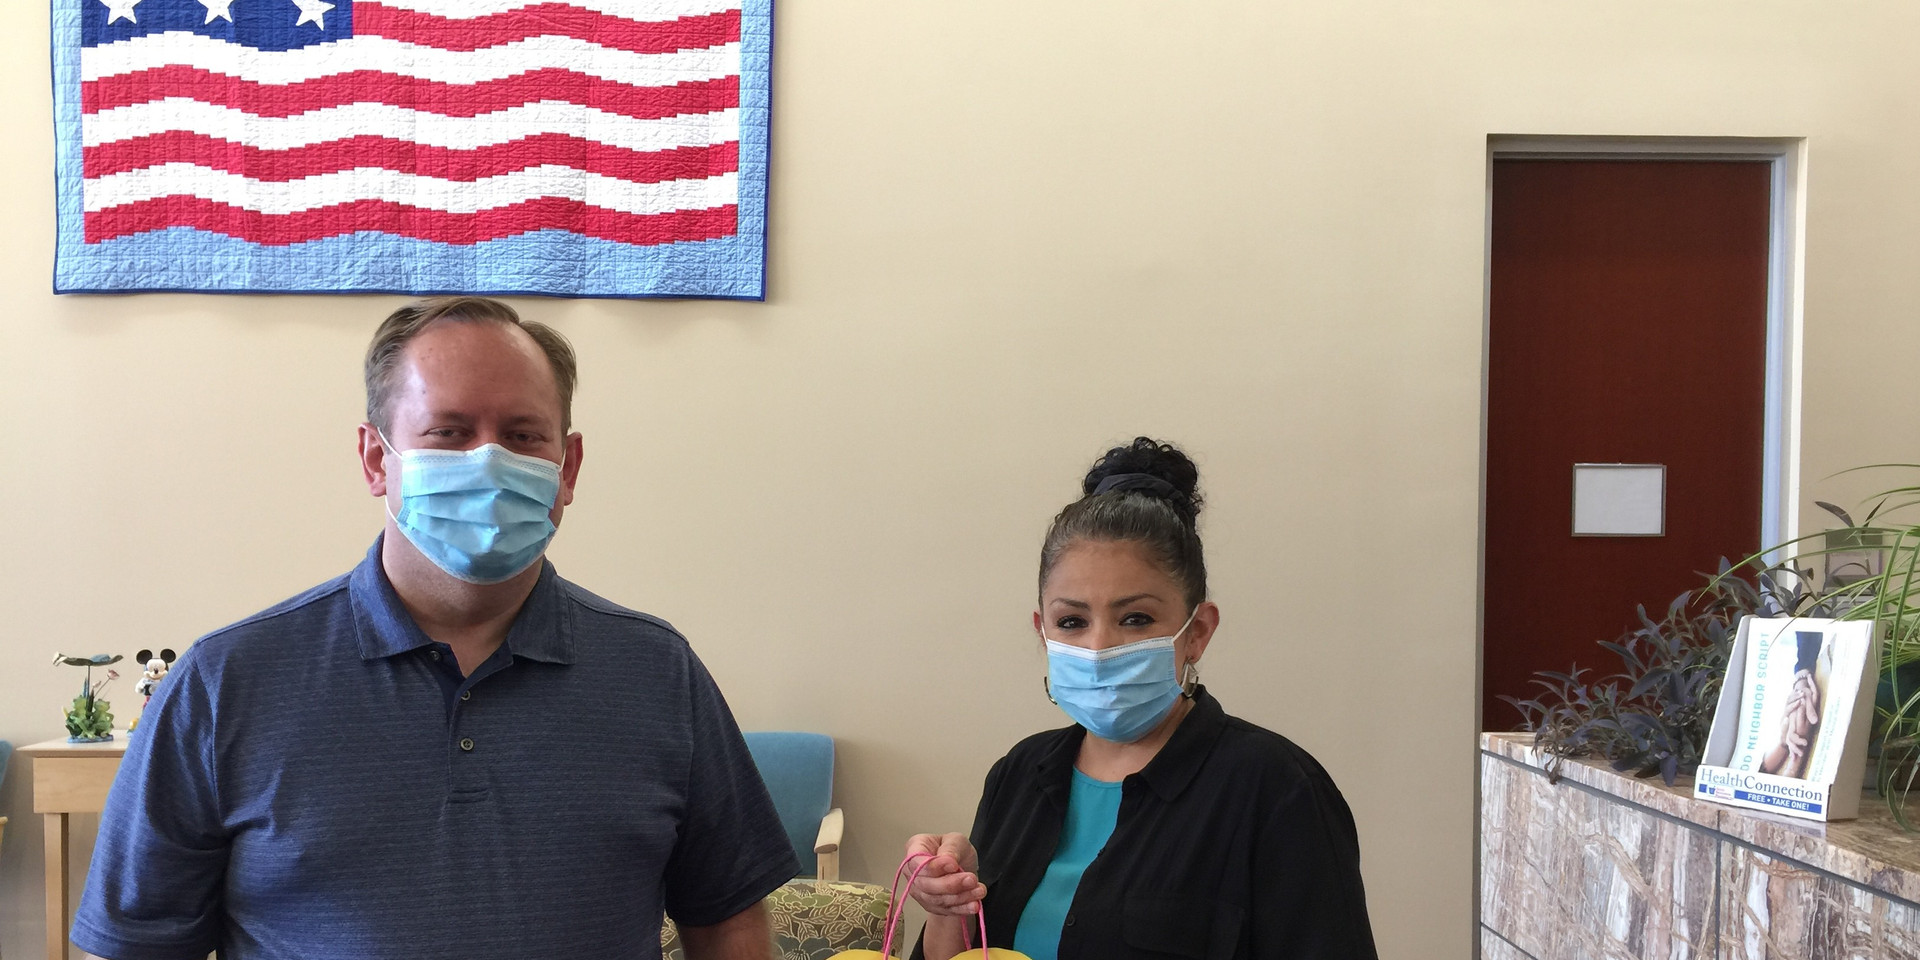 Stephen Stoddard, Executive Director of NMRHN delivering homemade mask donations to Guadalupe County Hospital on June 30, 2020.